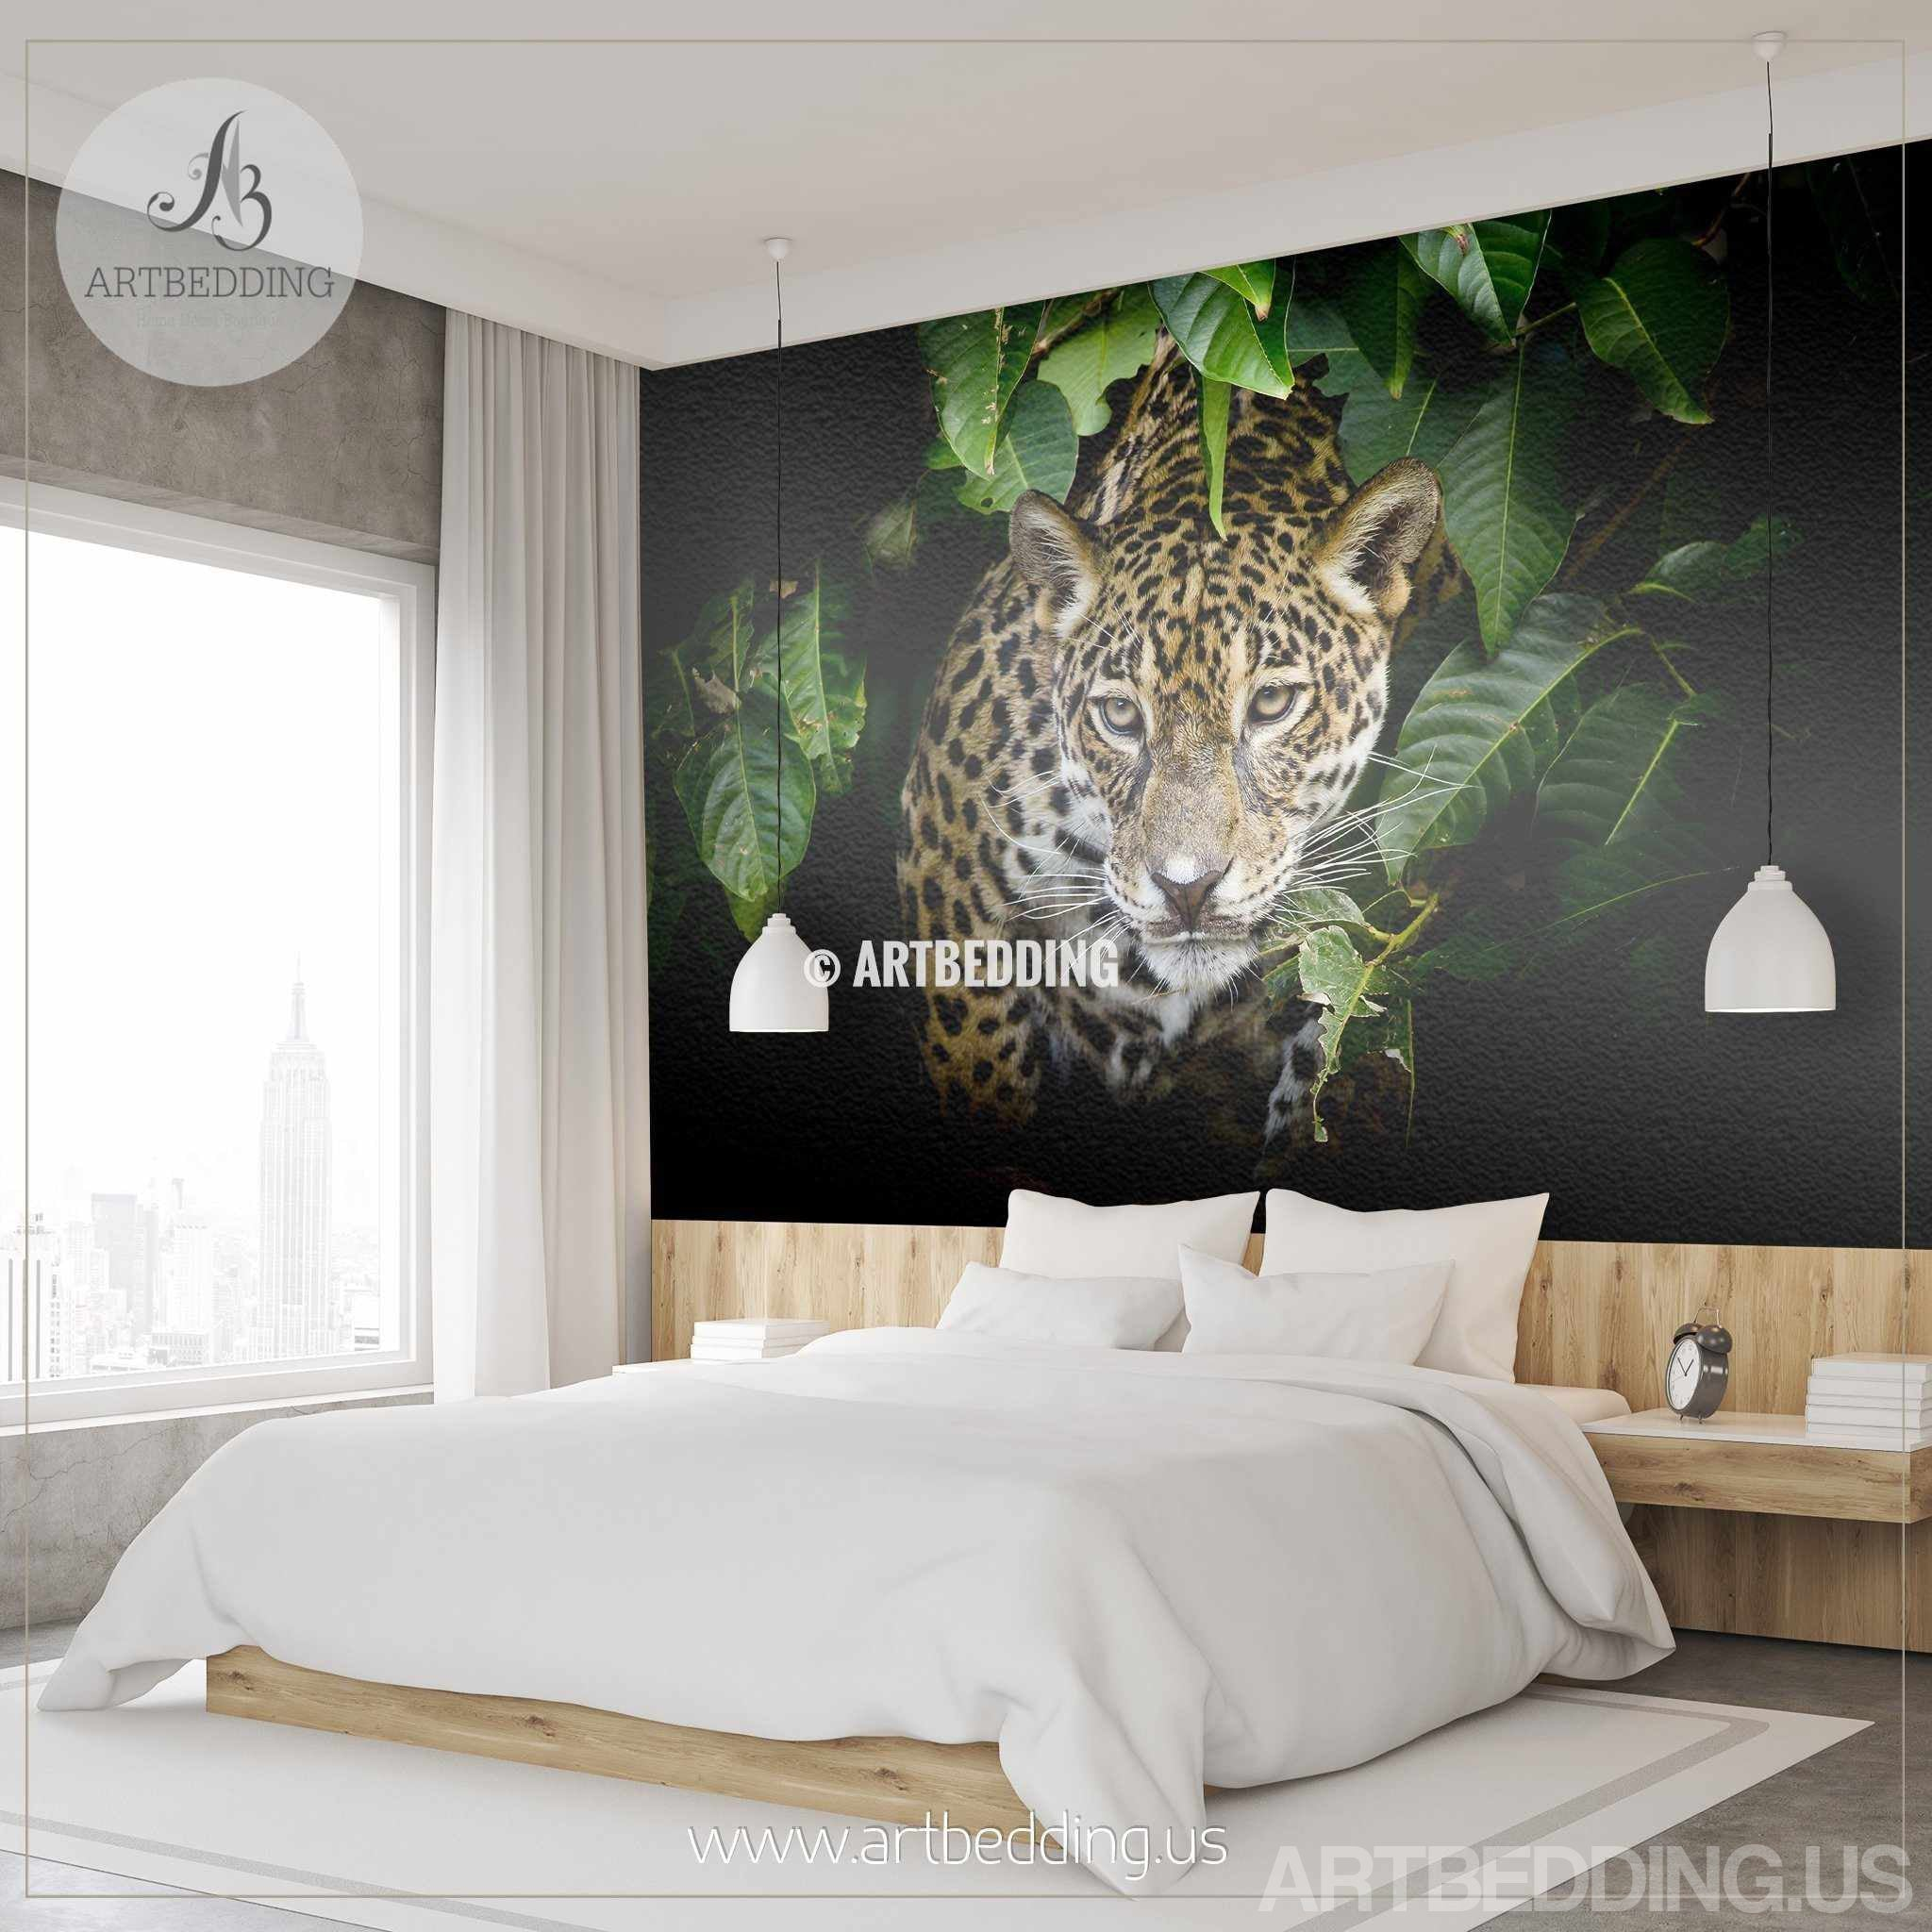 ... Jaguar Wall Mural, Jaguar Self Adhesive Peel U0026 Stick Photo Mural, Wild  Jaguar Portrait ... Part 47